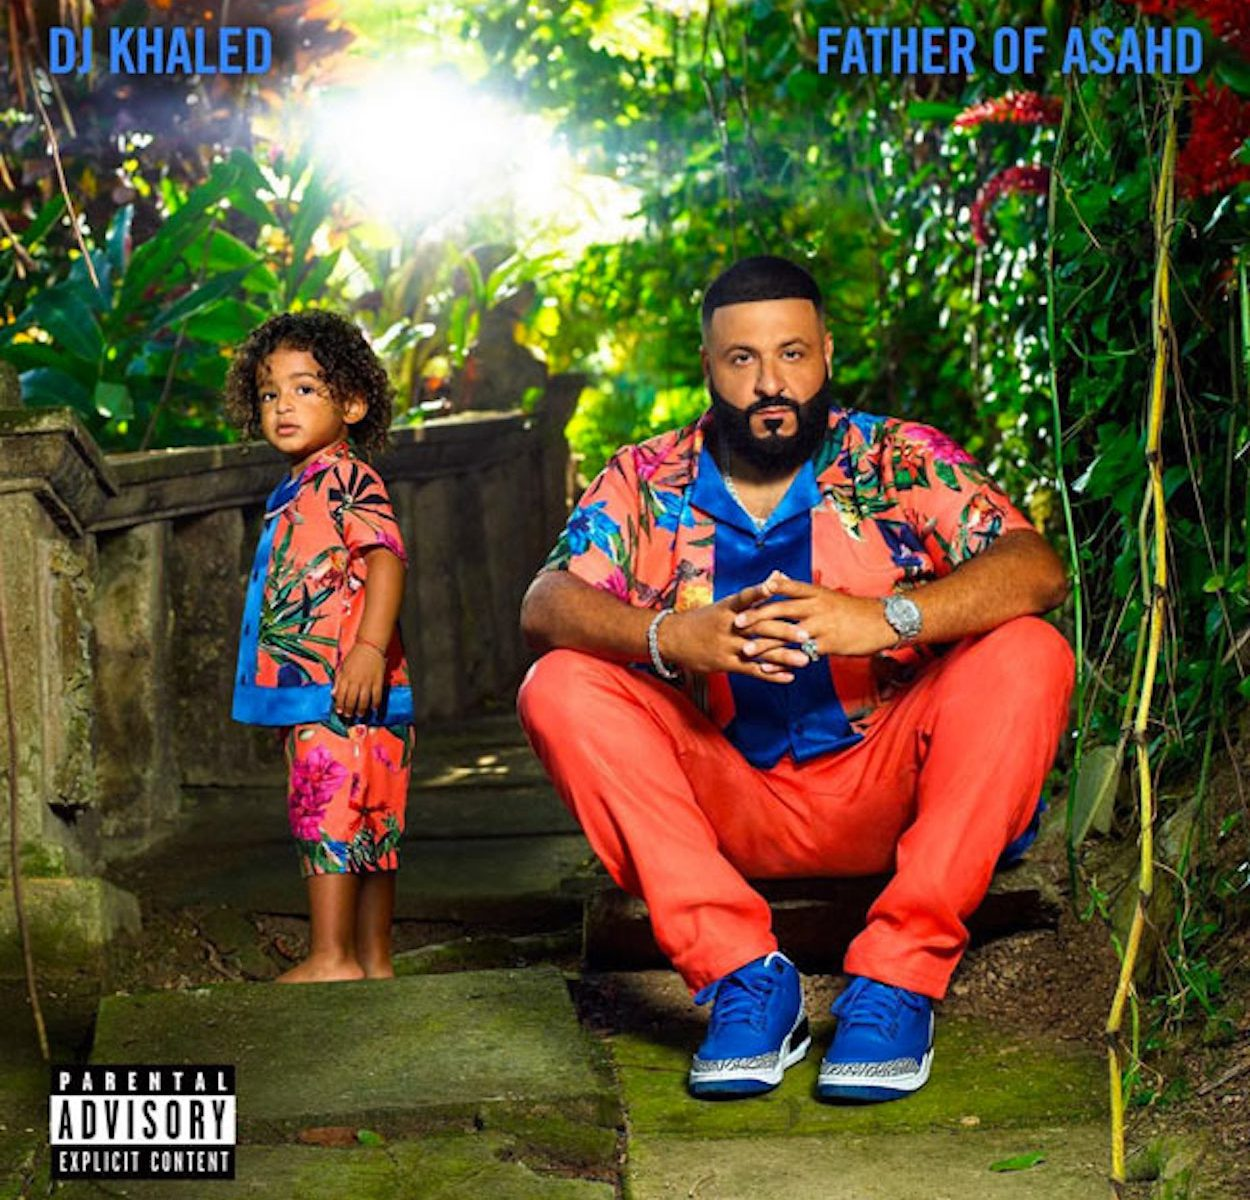 New DJ Khaled x Mitchell & Ness Collaboration Commemorates Father of Asahd Album